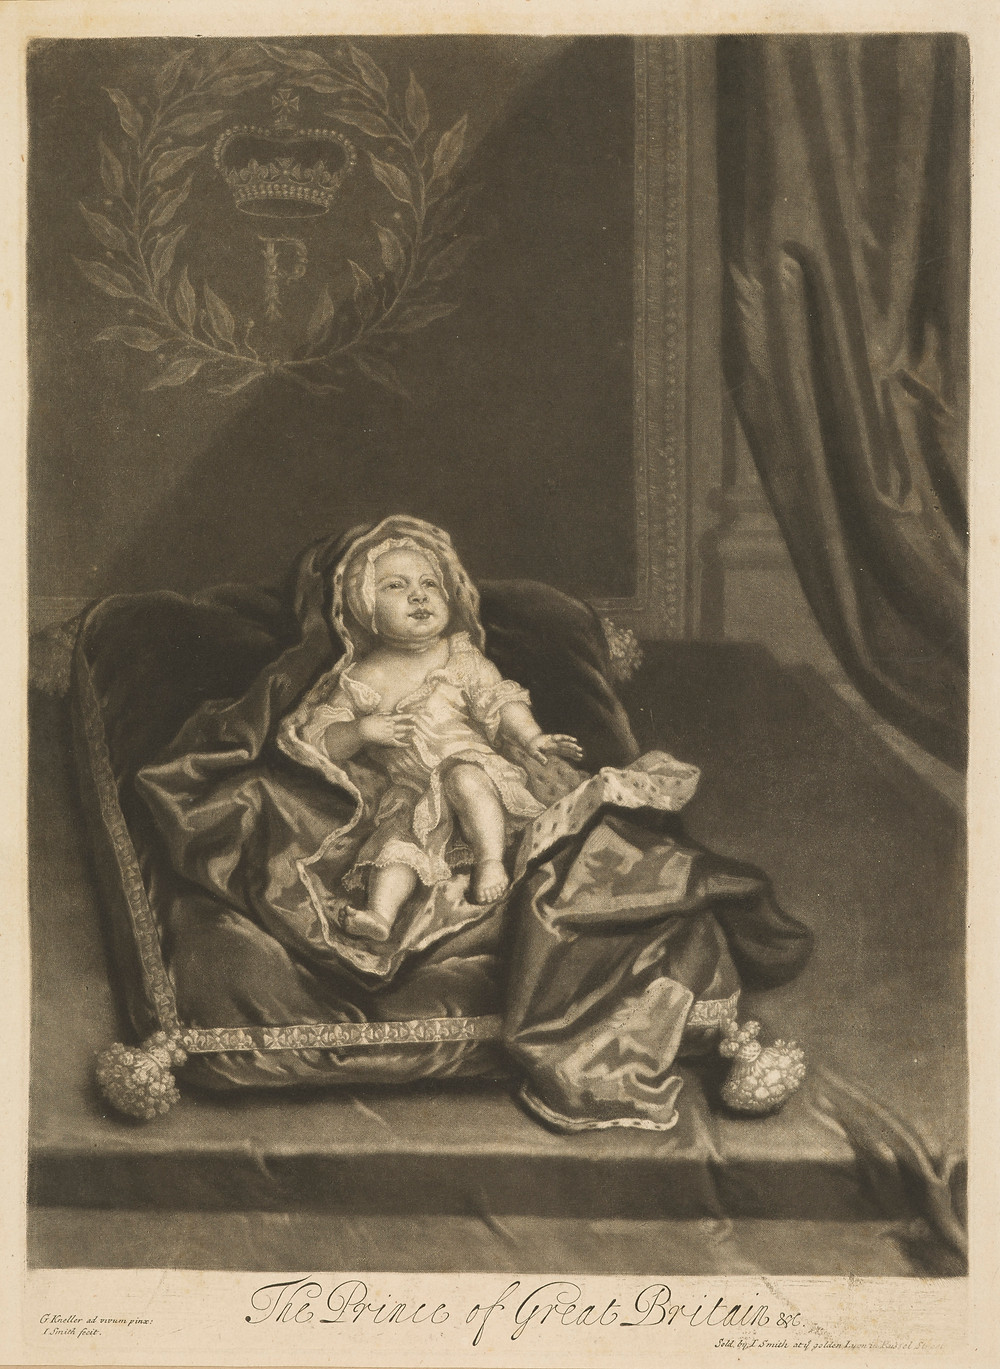 One of the genuine prints announcing the birth of James Francis Edward Stuart, Prince of Wales. He would grow old in exile as a figurehead for the Jacobite Risings, and become the father of Bonnie Prince Charlie. Source: National Galleries Scotland.